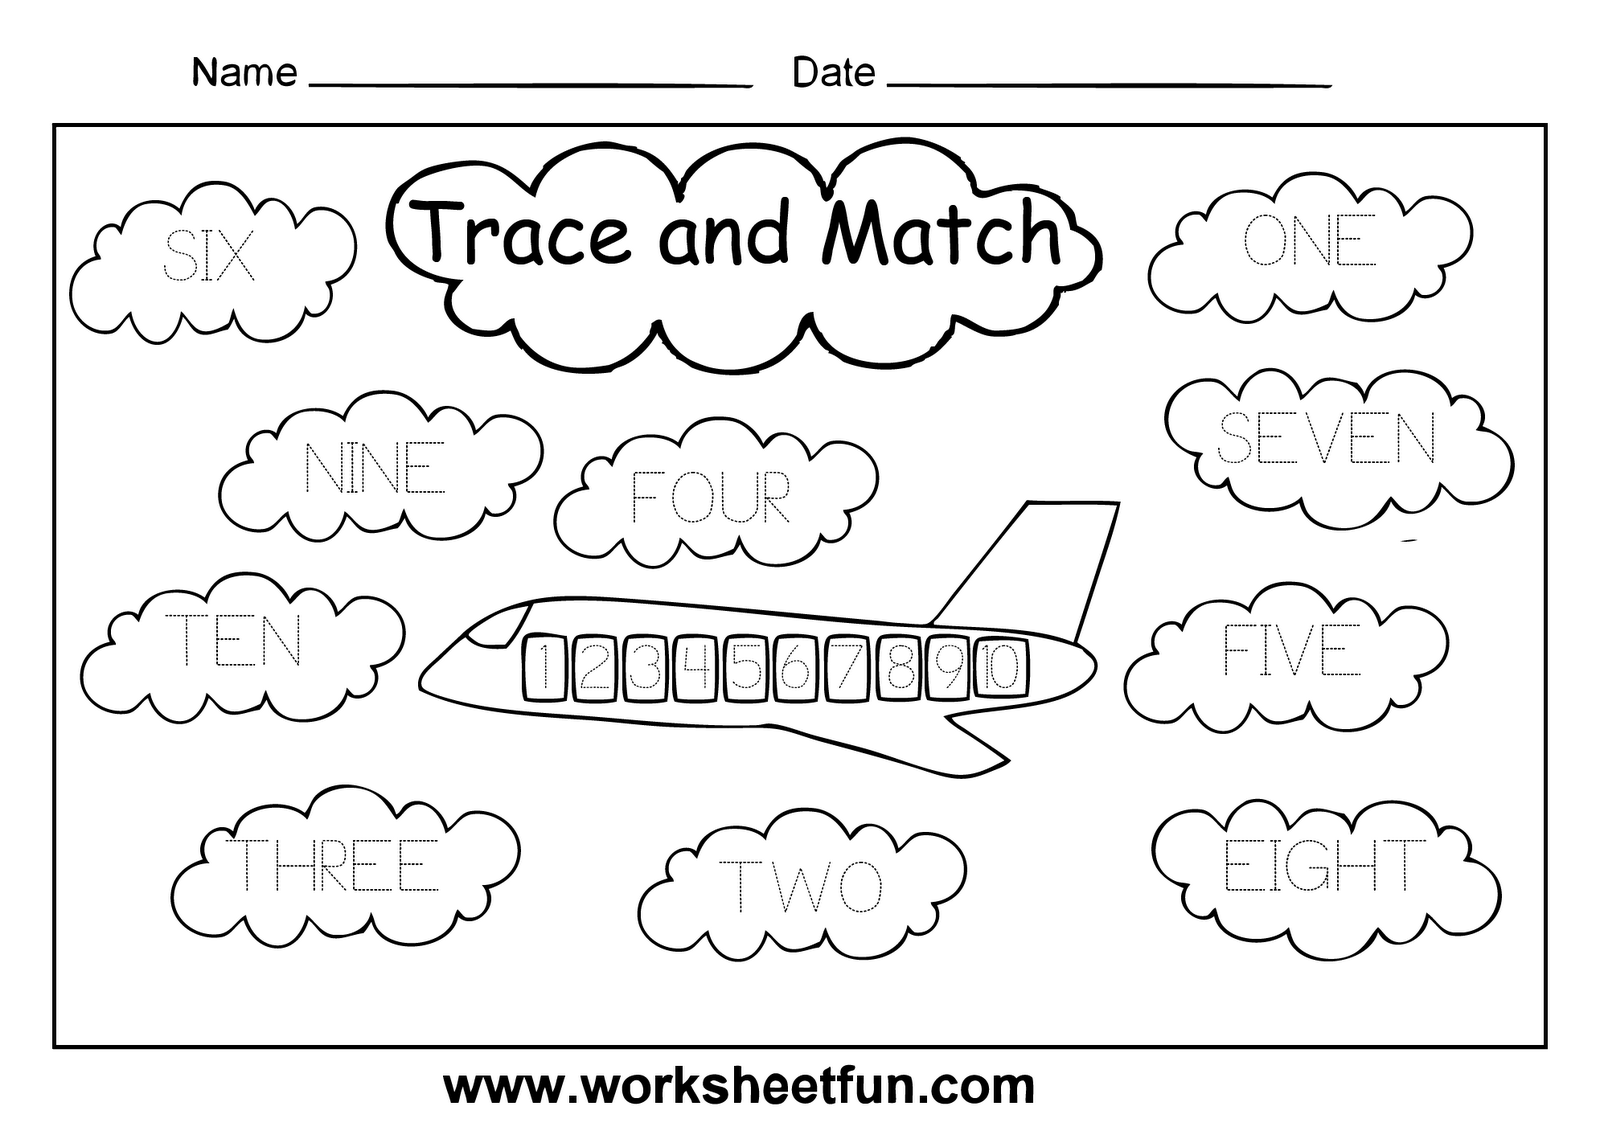 Weirdmailus  Surprising Worksheet Numbers    Reocurent With Lovely Free Sequencing Worksheets Besides Grade  Math Worksheets Furthermore Axial Skeleton Worksheet With Amazing Intersecting Lines Worksheet Also Preschool Addition Worksheets In Addition United States Map Worksheet And Simple Machine Worksheet As Well As Laws Of Exponents Worksheets Additionally Halloween Printable Worksheets From Reocurentcom With Weirdmailus  Lovely Worksheet Numbers    Reocurent With Amazing Free Sequencing Worksheets Besides Grade  Math Worksheets Furthermore Axial Skeleton Worksheet And Surprising Intersecting Lines Worksheet Also Preschool Addition Worksheets In Addition United States Map Worksheet From Reocurentcom